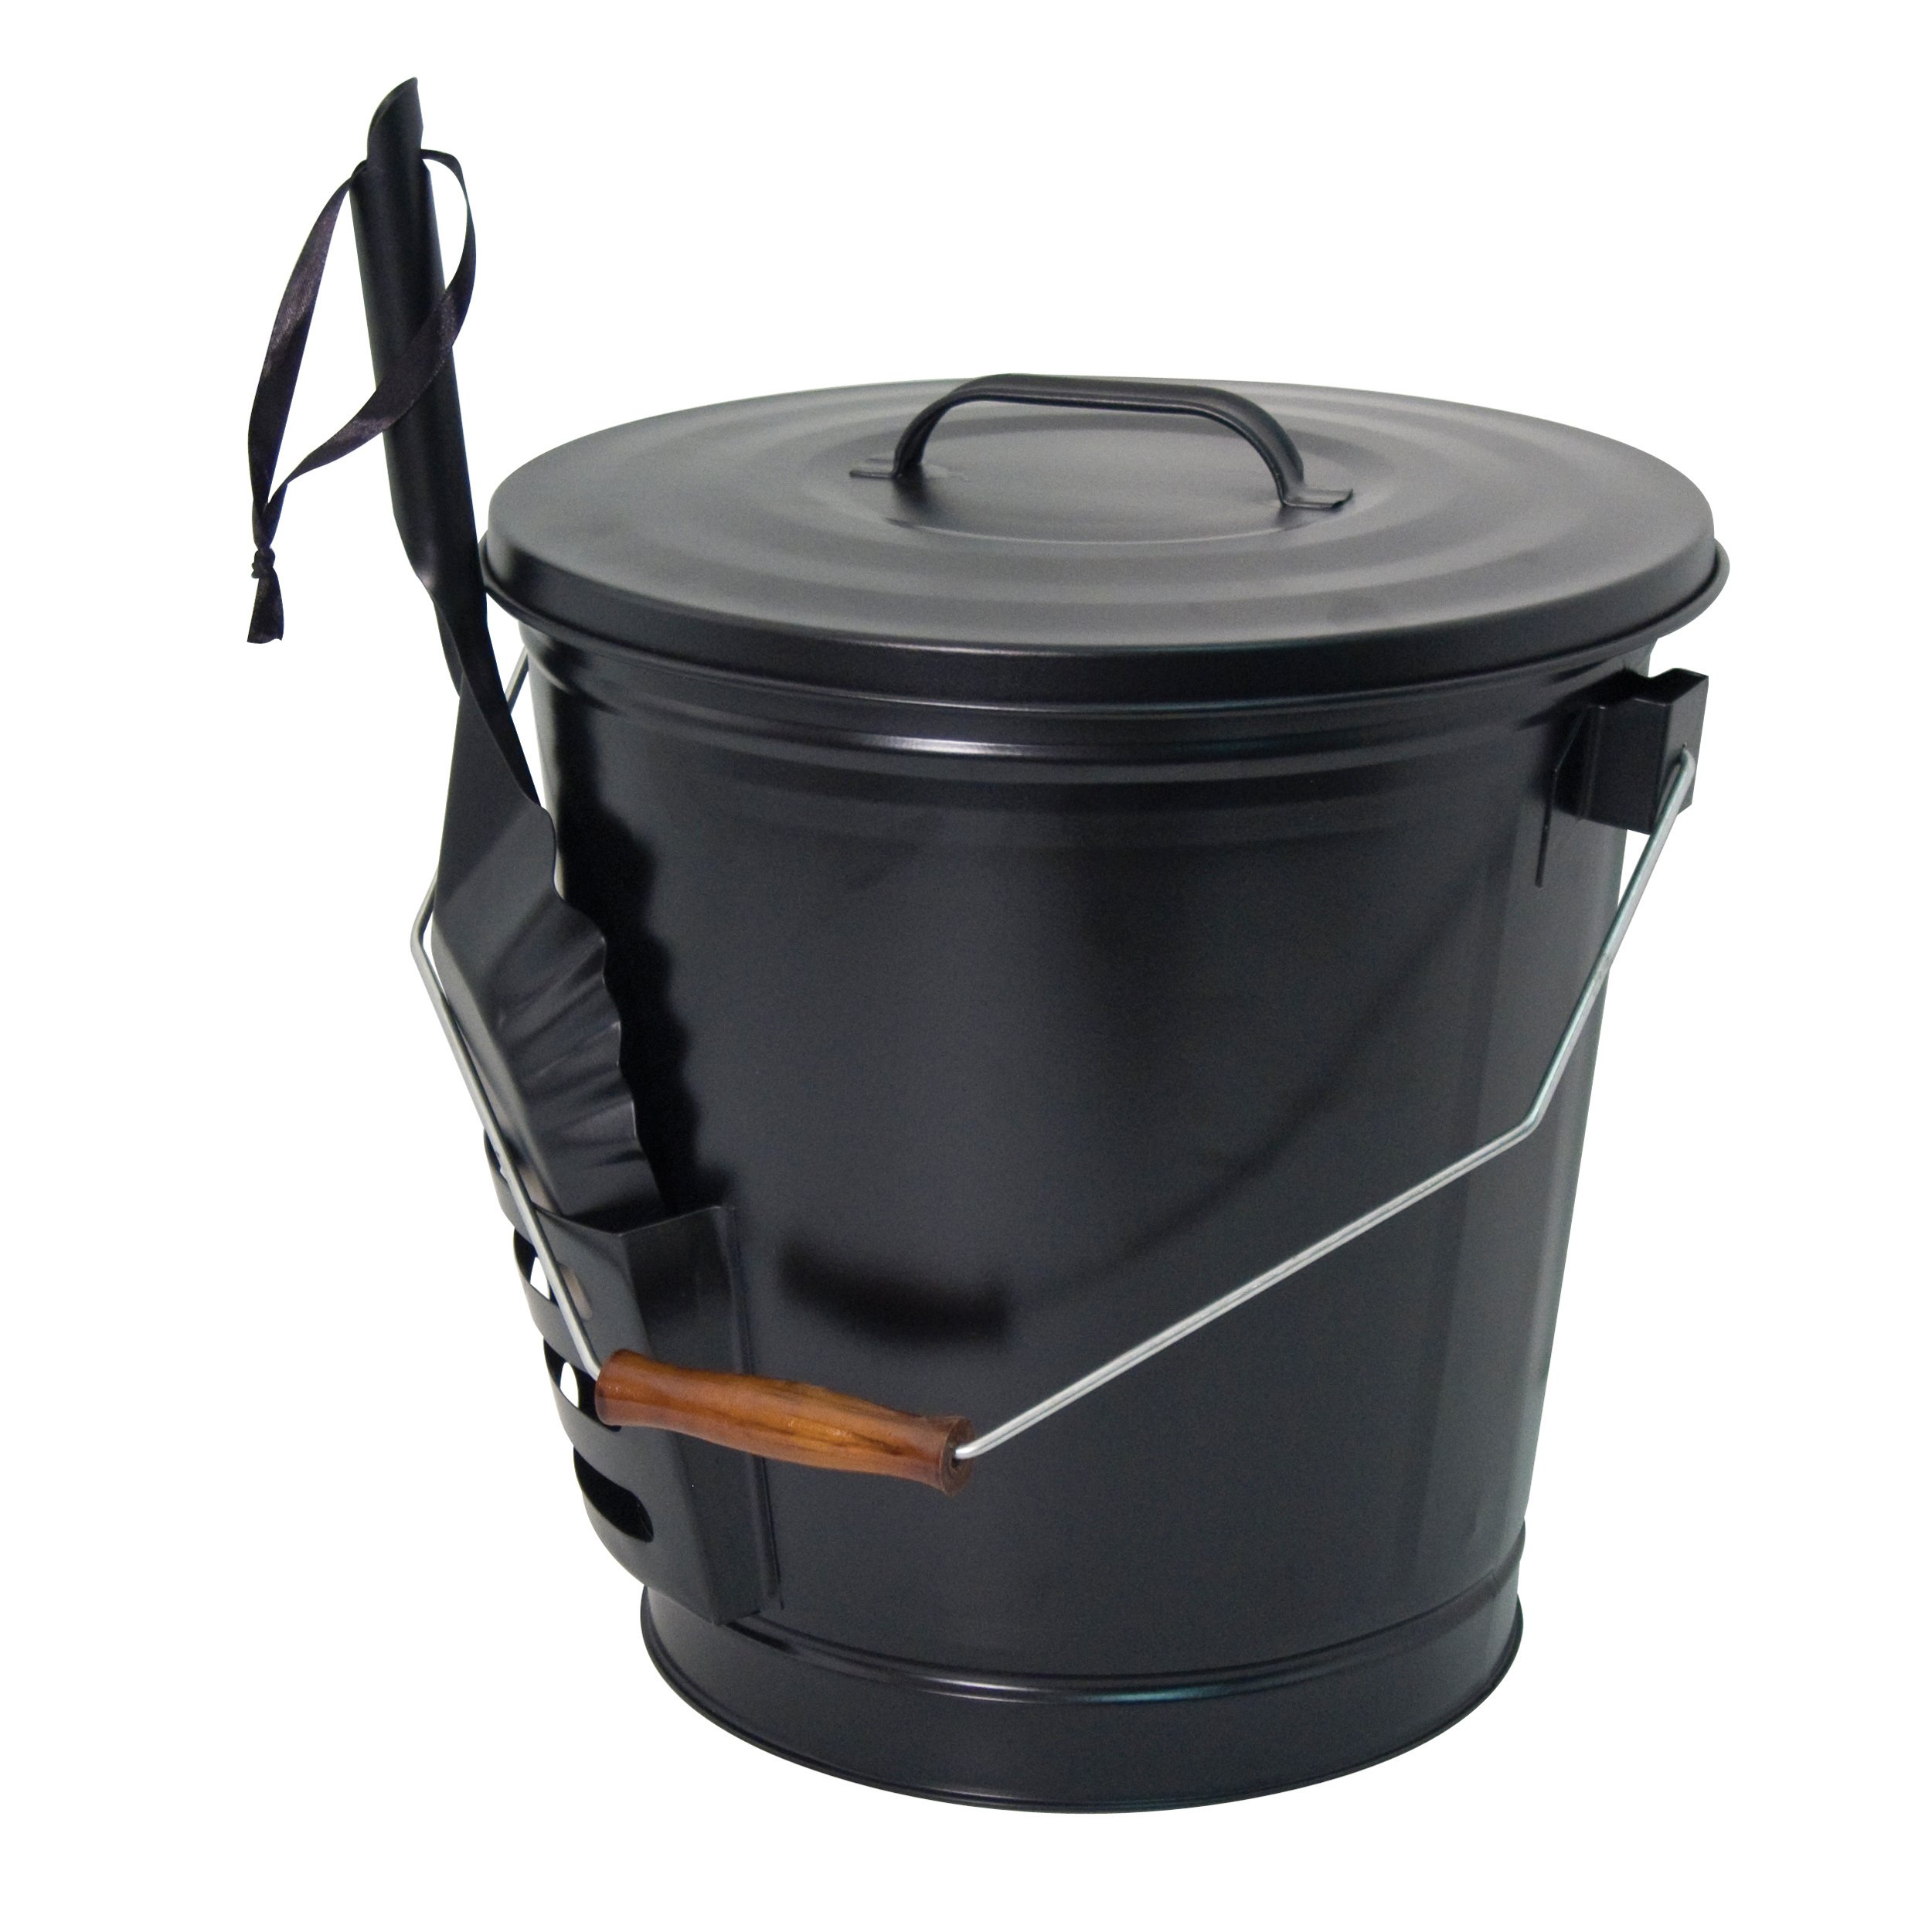 Panacea 15343 Ash Bucket with Shovel, Black by Panacea